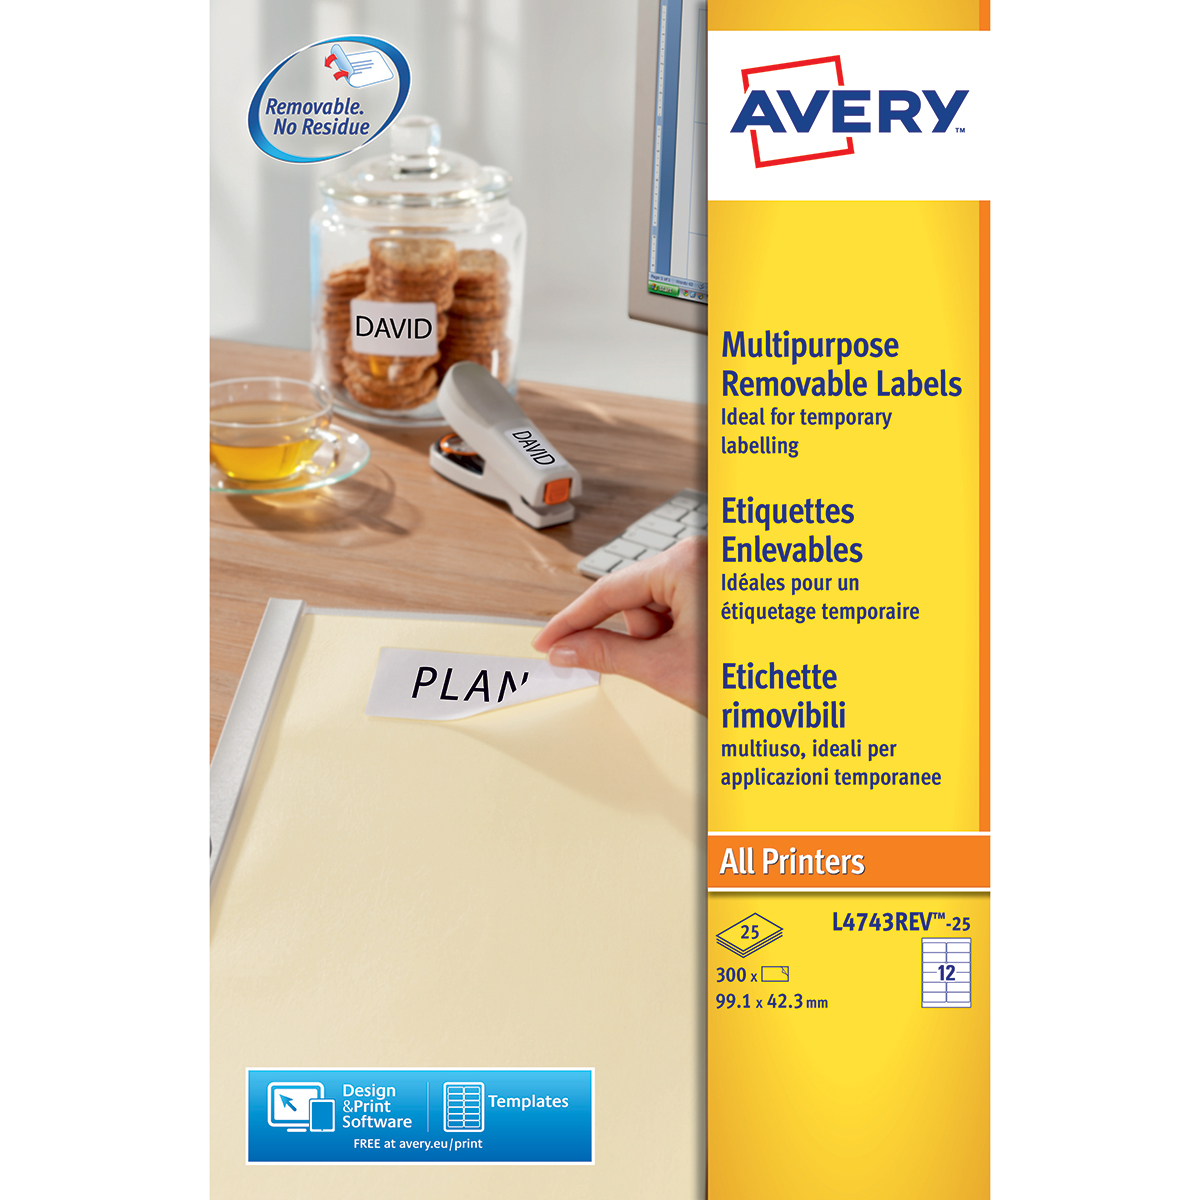 Avery L4743REV-25 Multipurpose Removable Labels 25 sheets - 12 Labels per Sheet